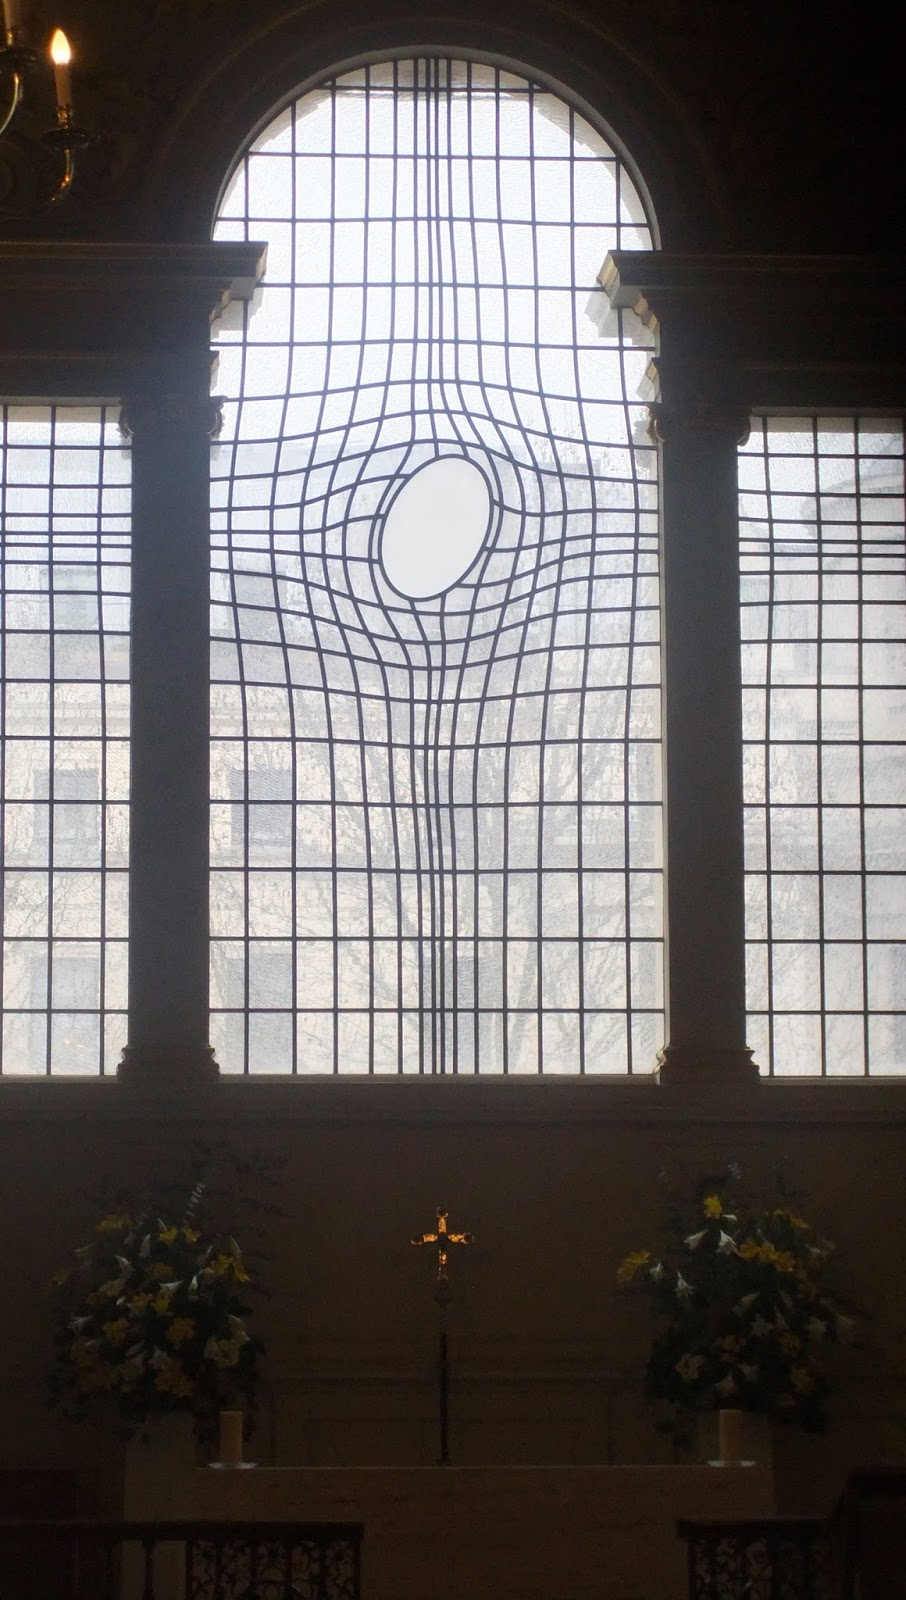 Stained glass window with cross design with a hole in it